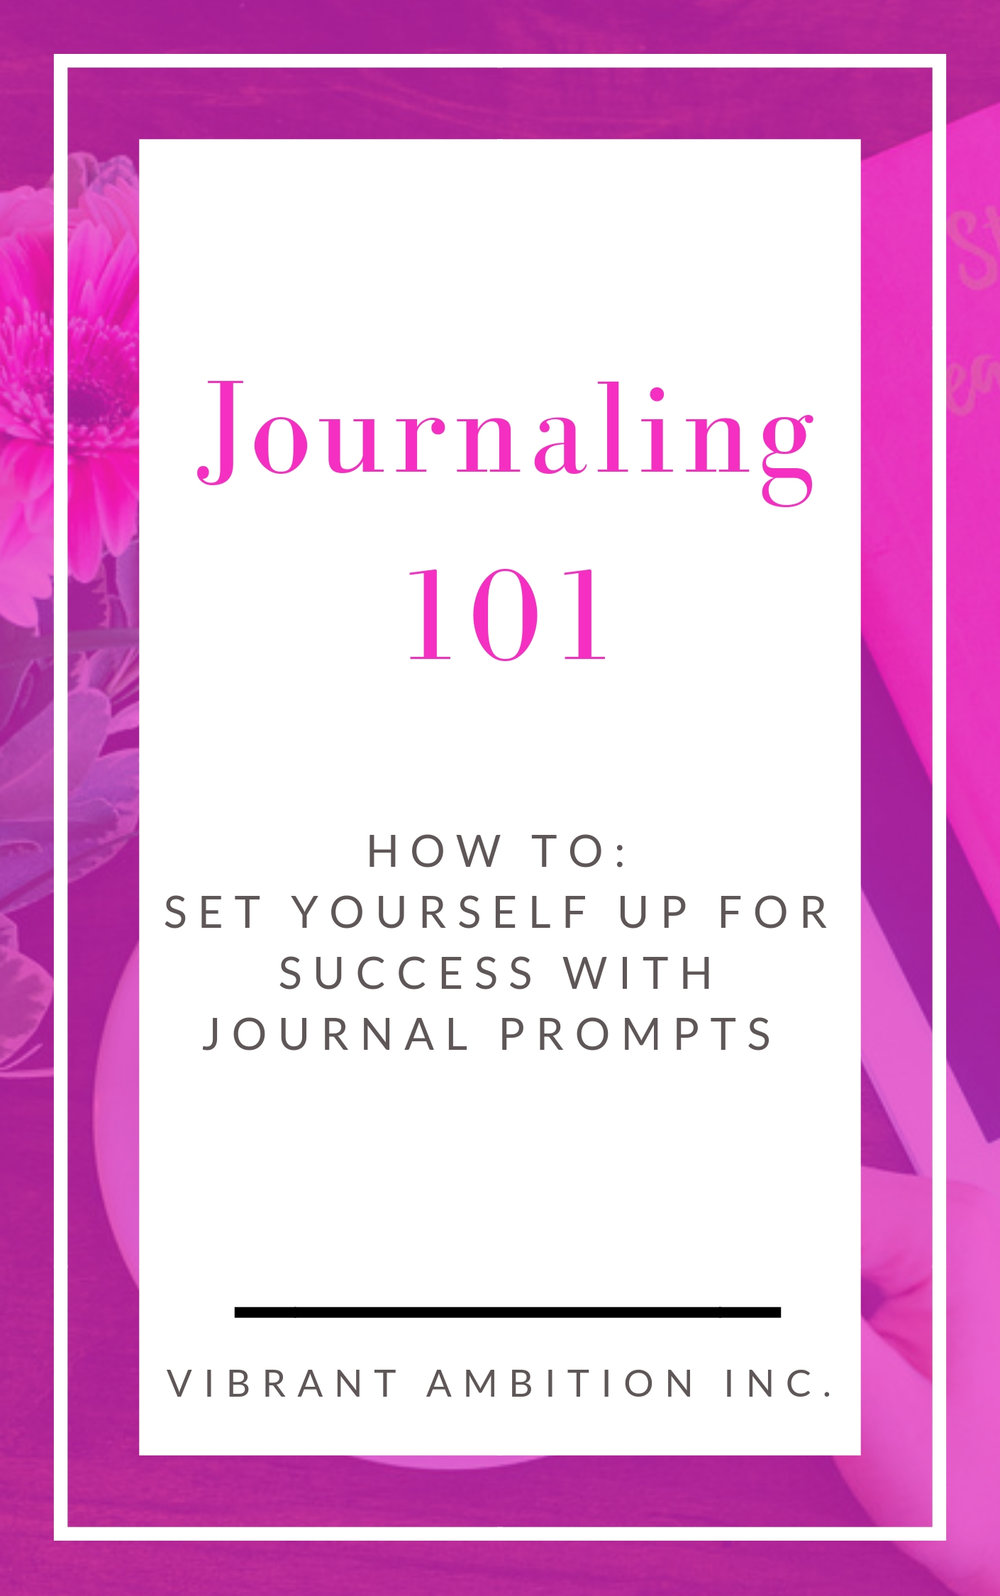 Journaling 101 Ebook.jpg